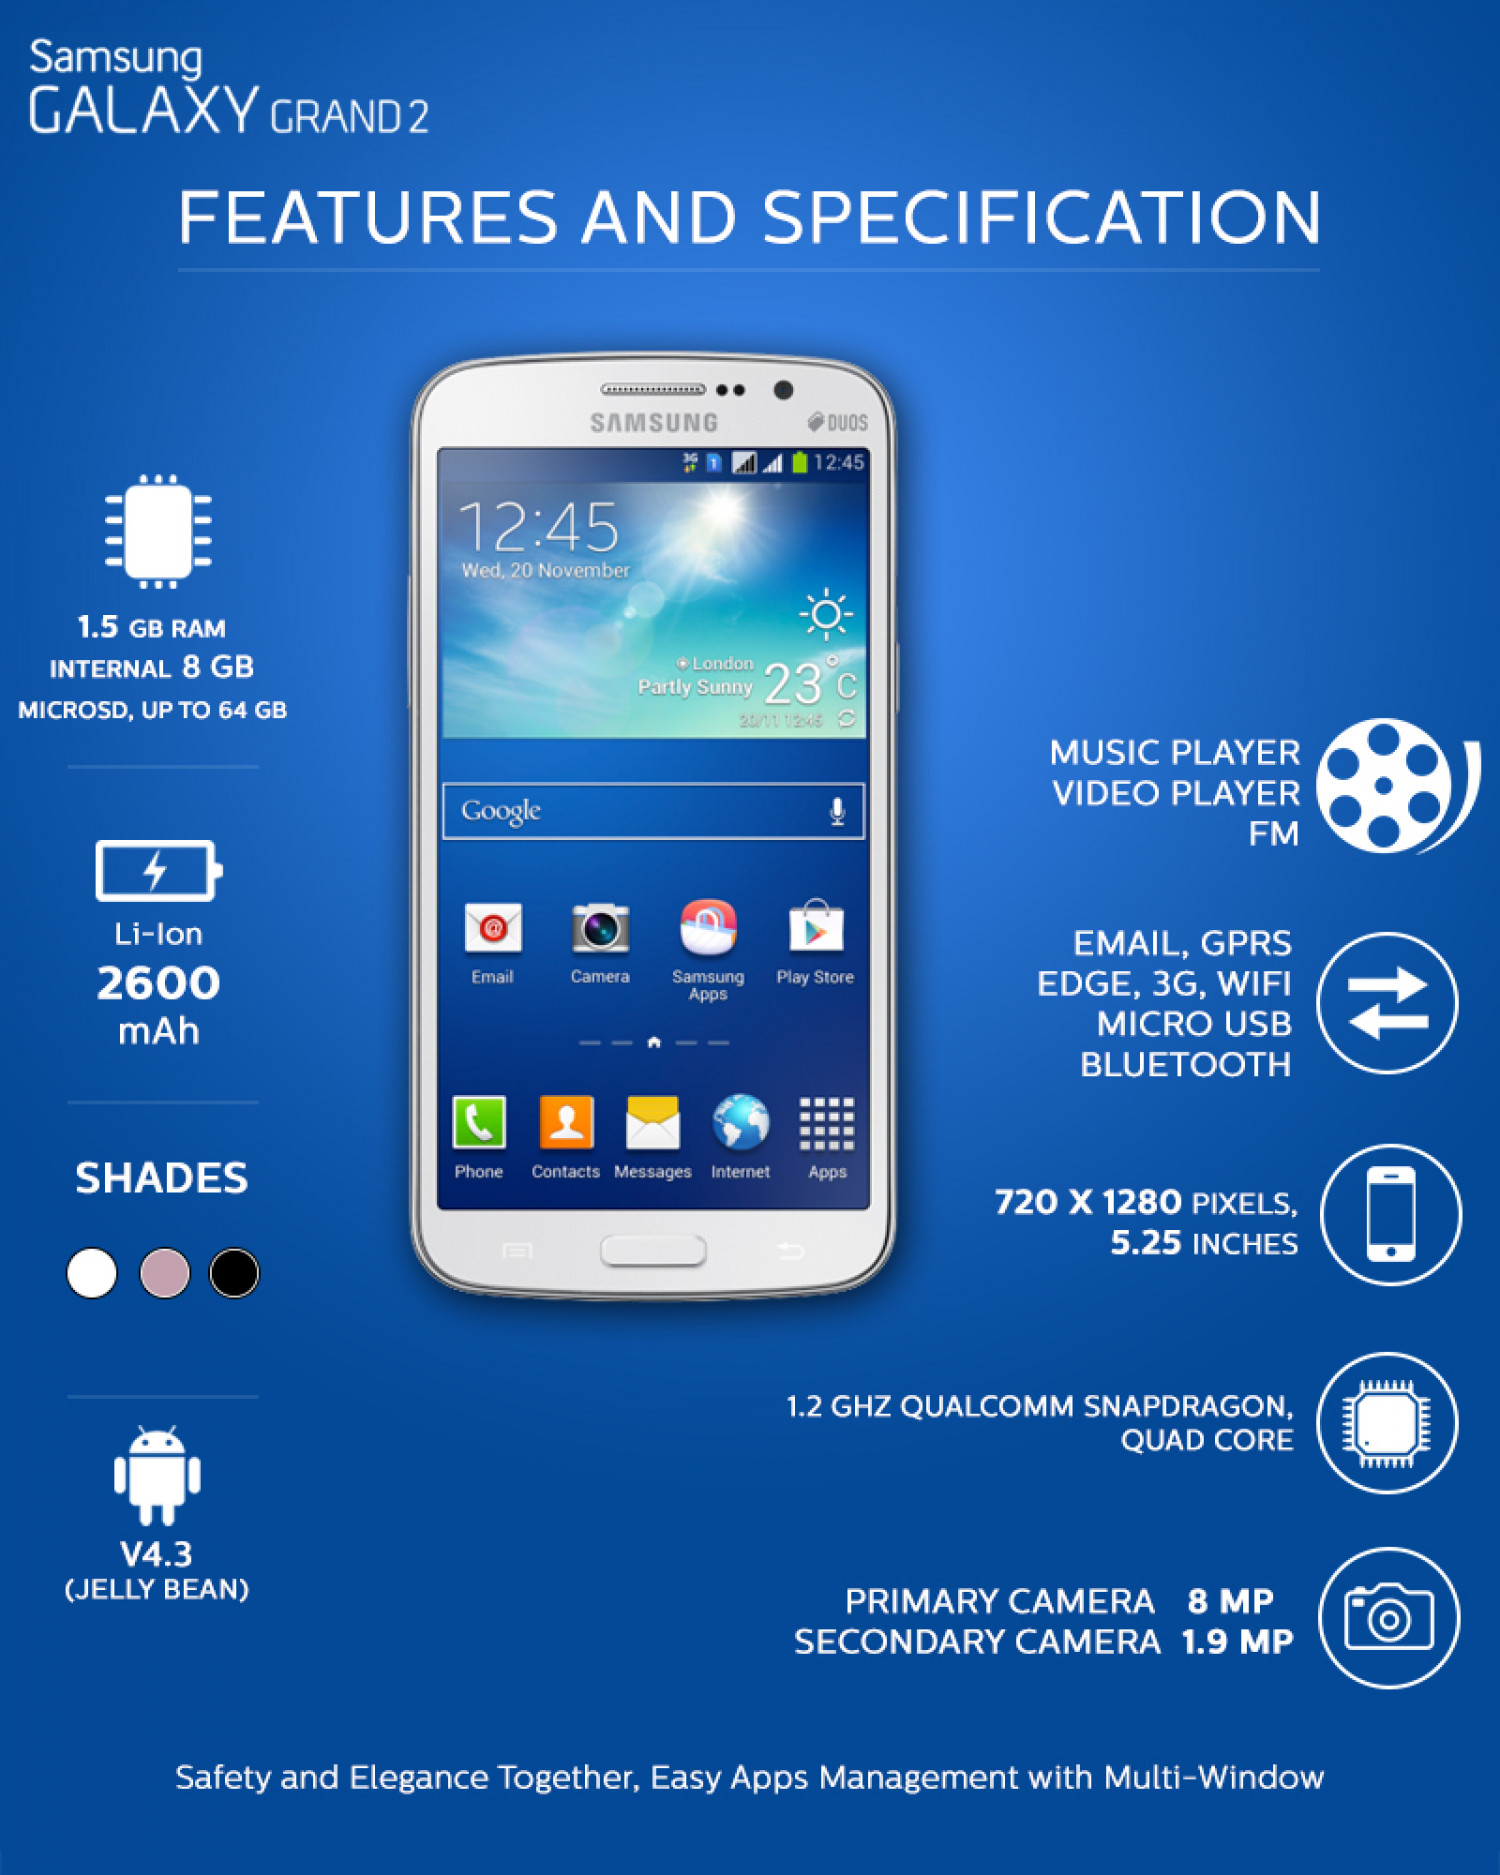 samsung galaxy grand 2 features and specification. Black Bedroom Furniture Sets. Home Design Ideas